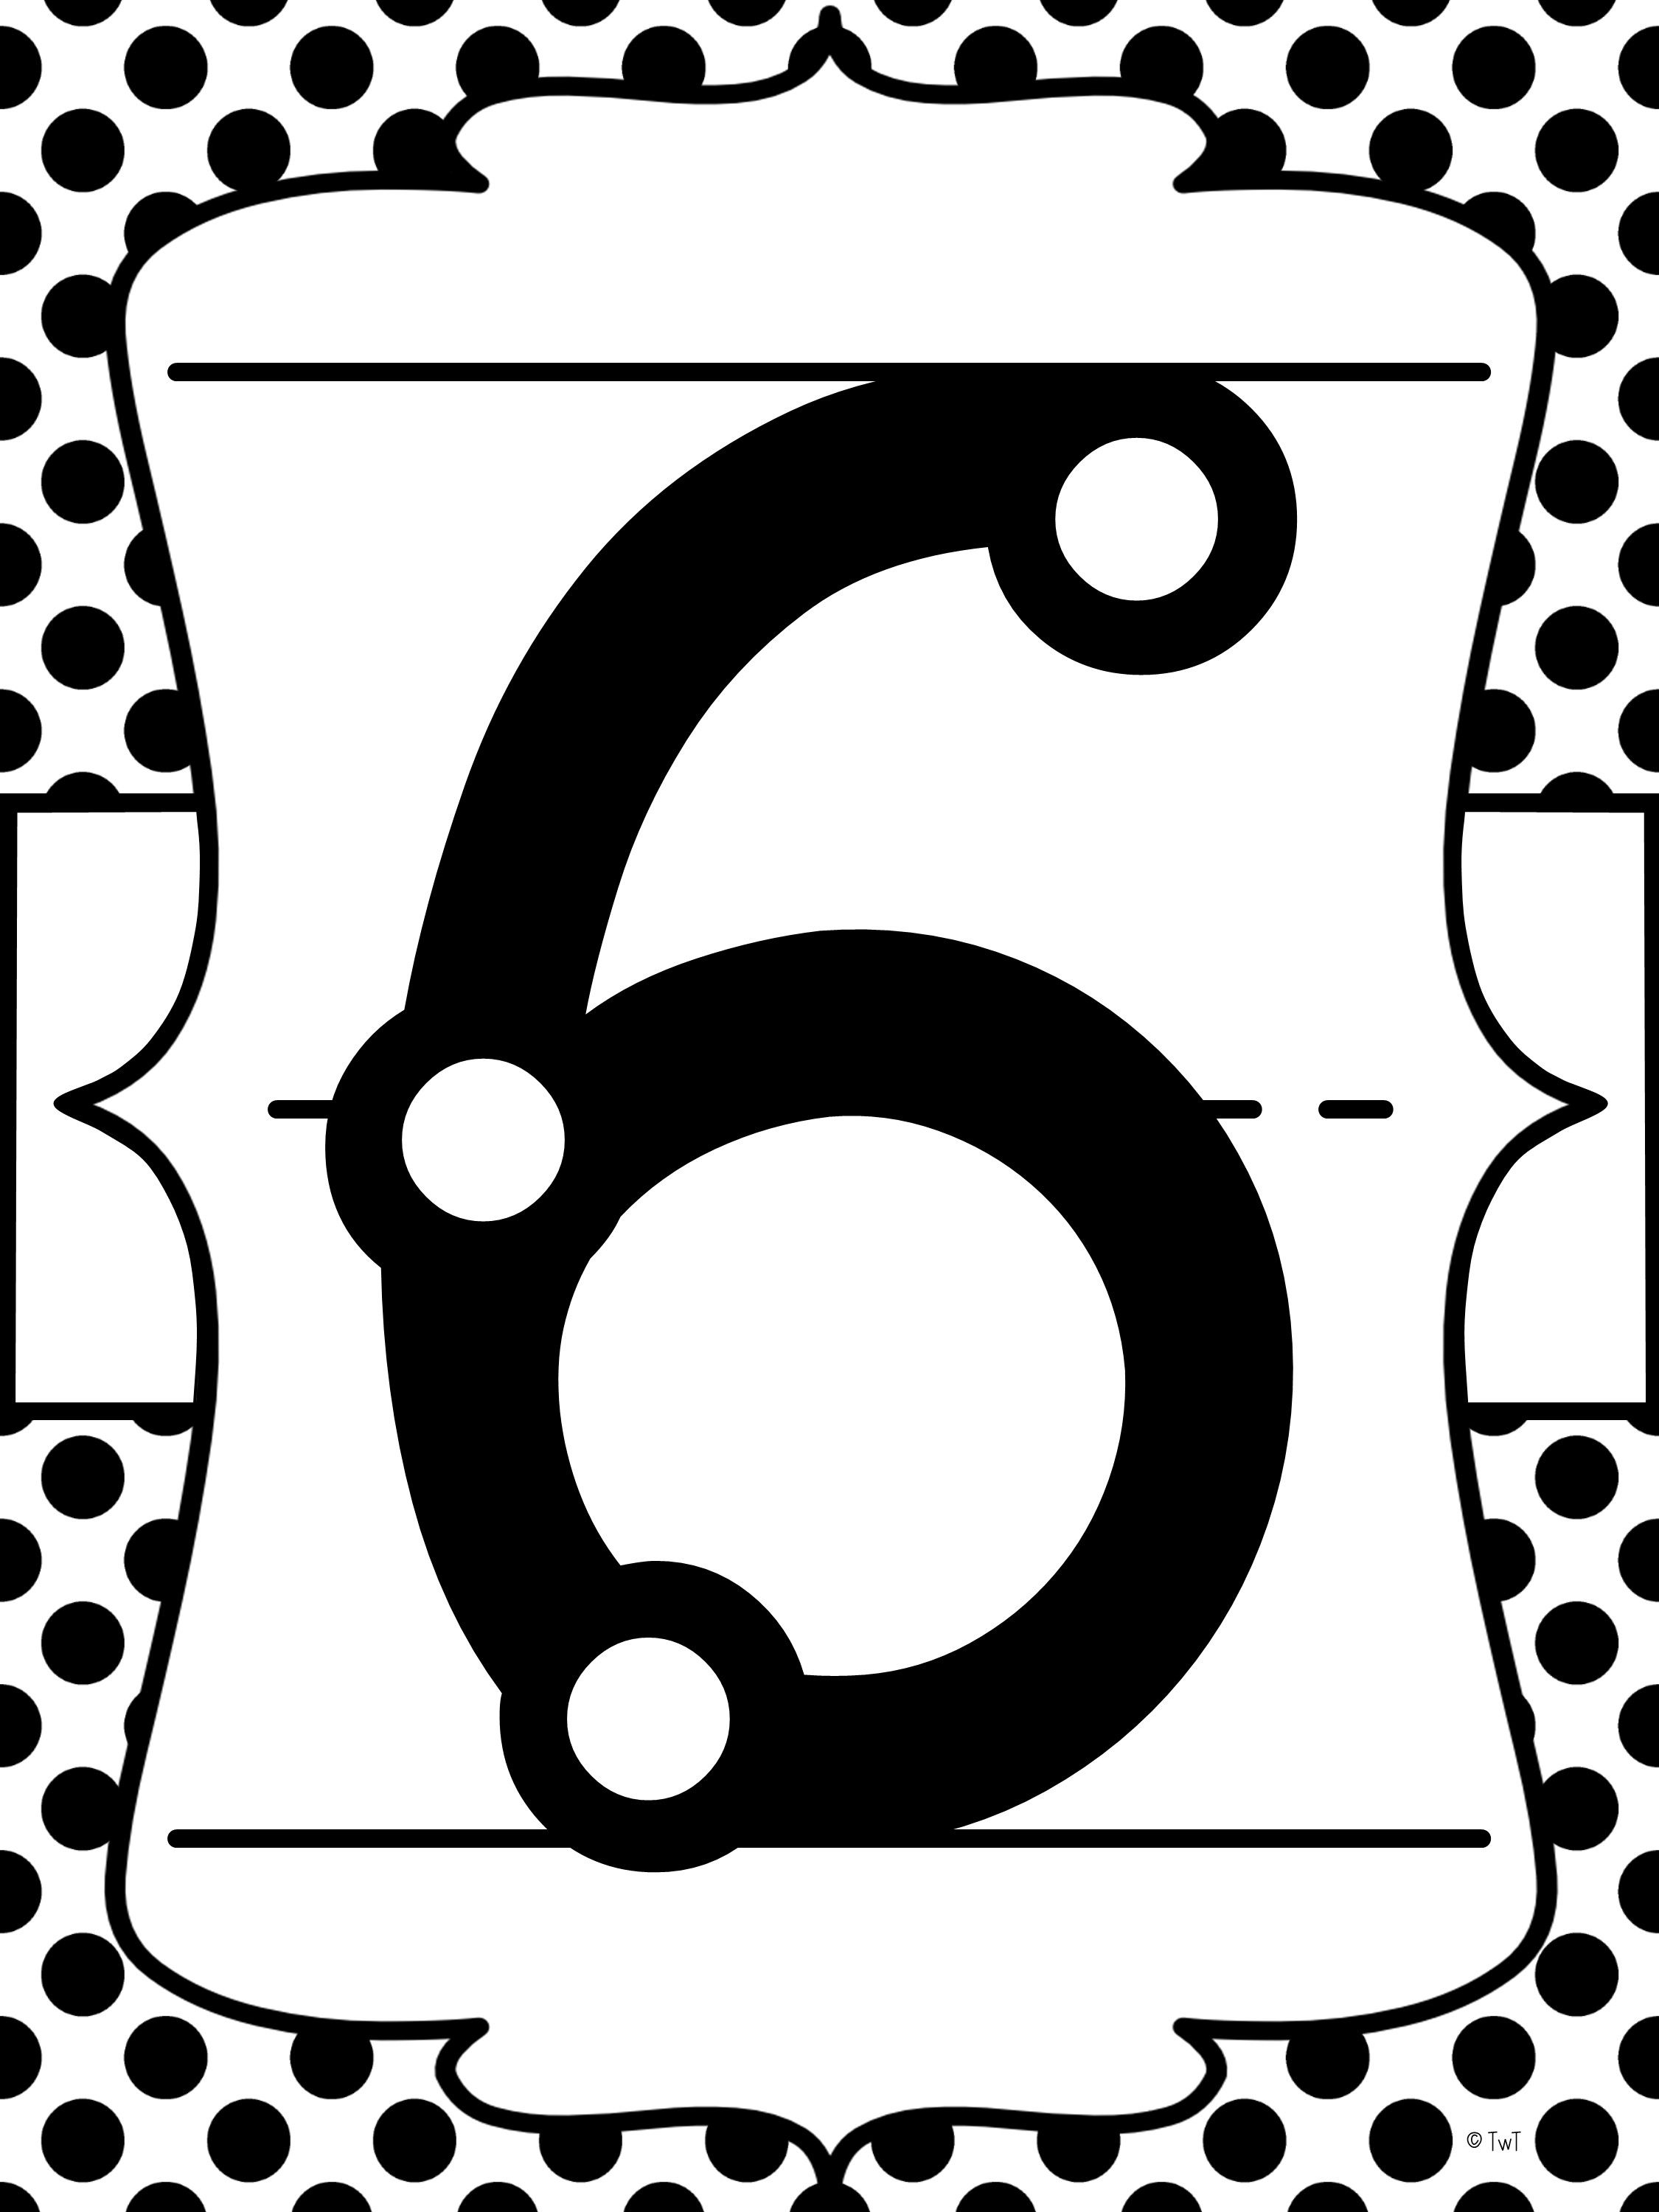 TouchMath Number Posters in black and white #touchmath #